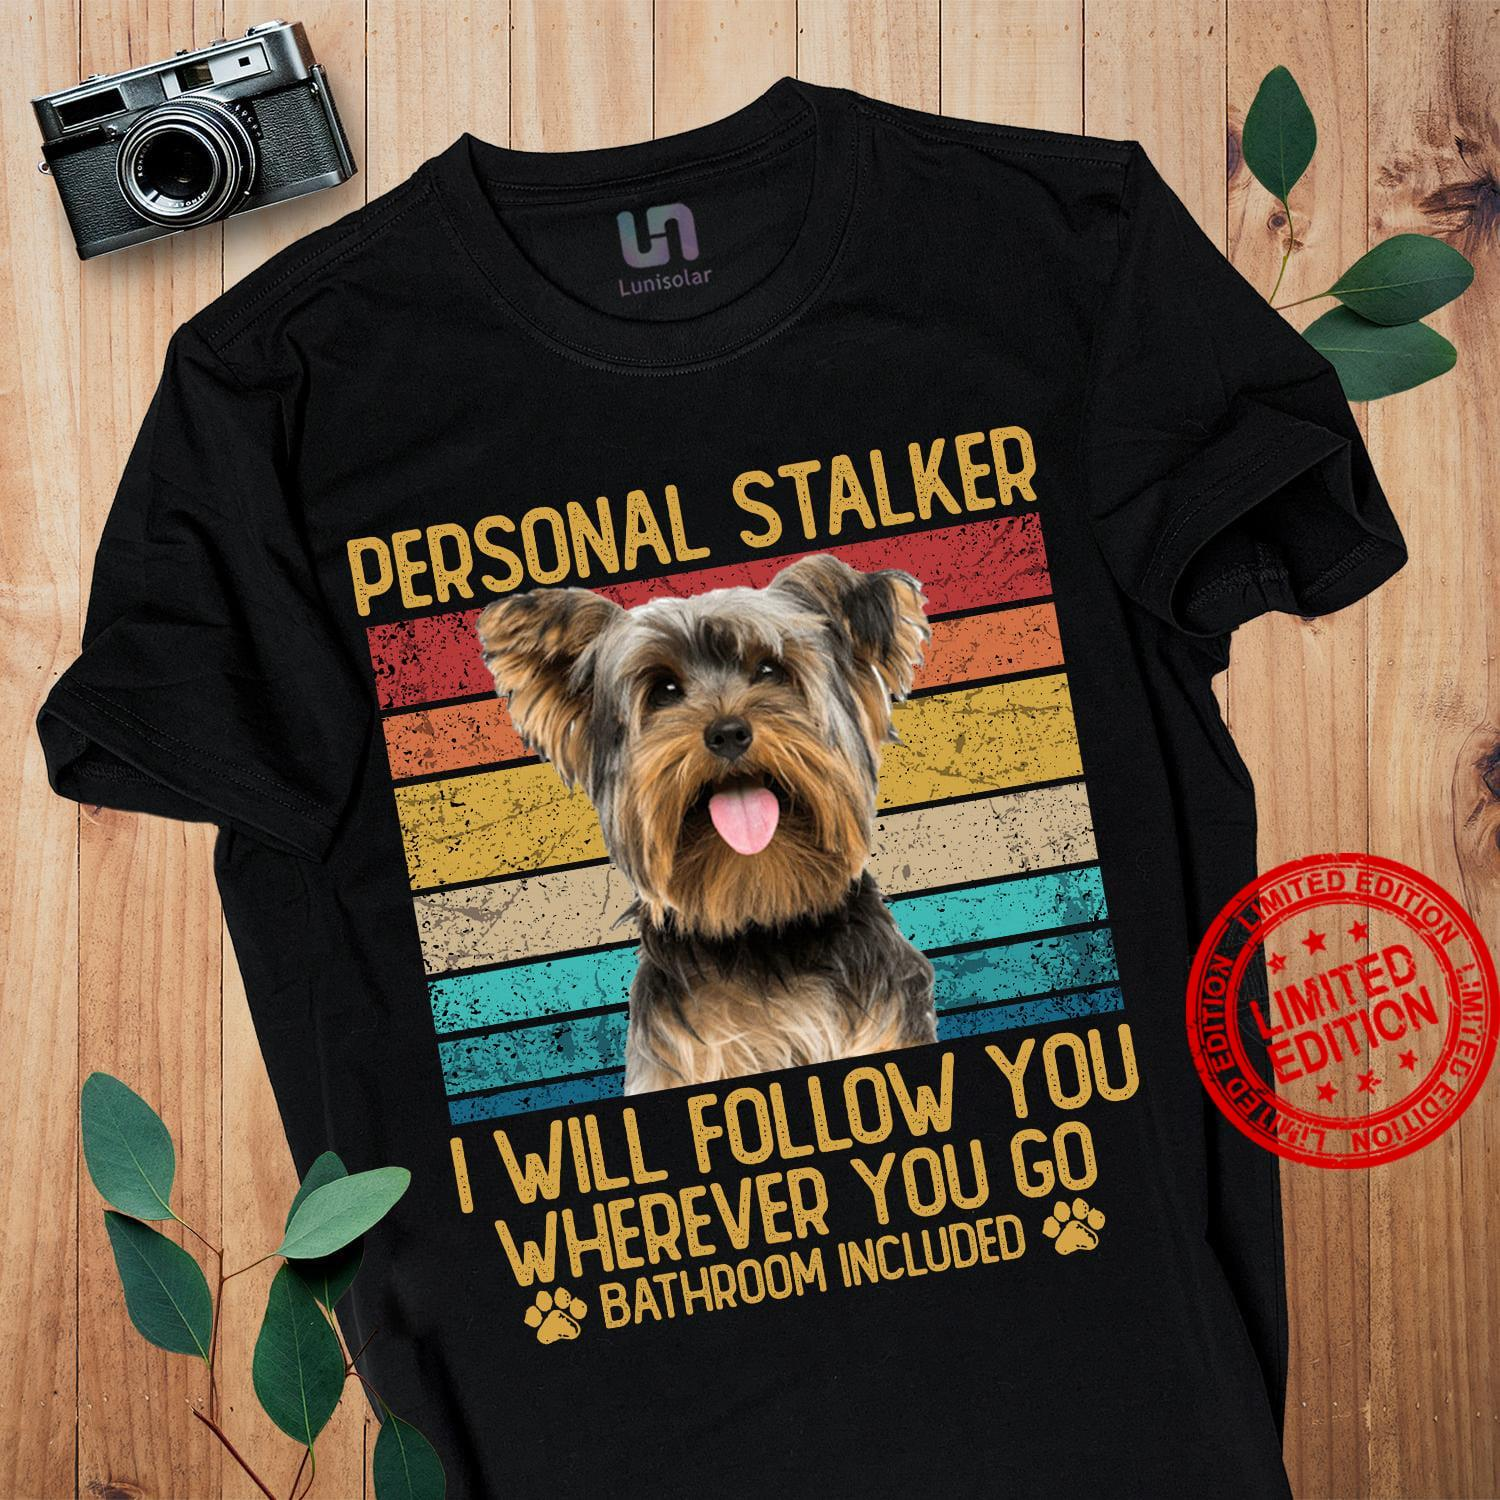 Yorkie Person Stalker I Will Follow You Wherever You Go Bathroom Included Shirt